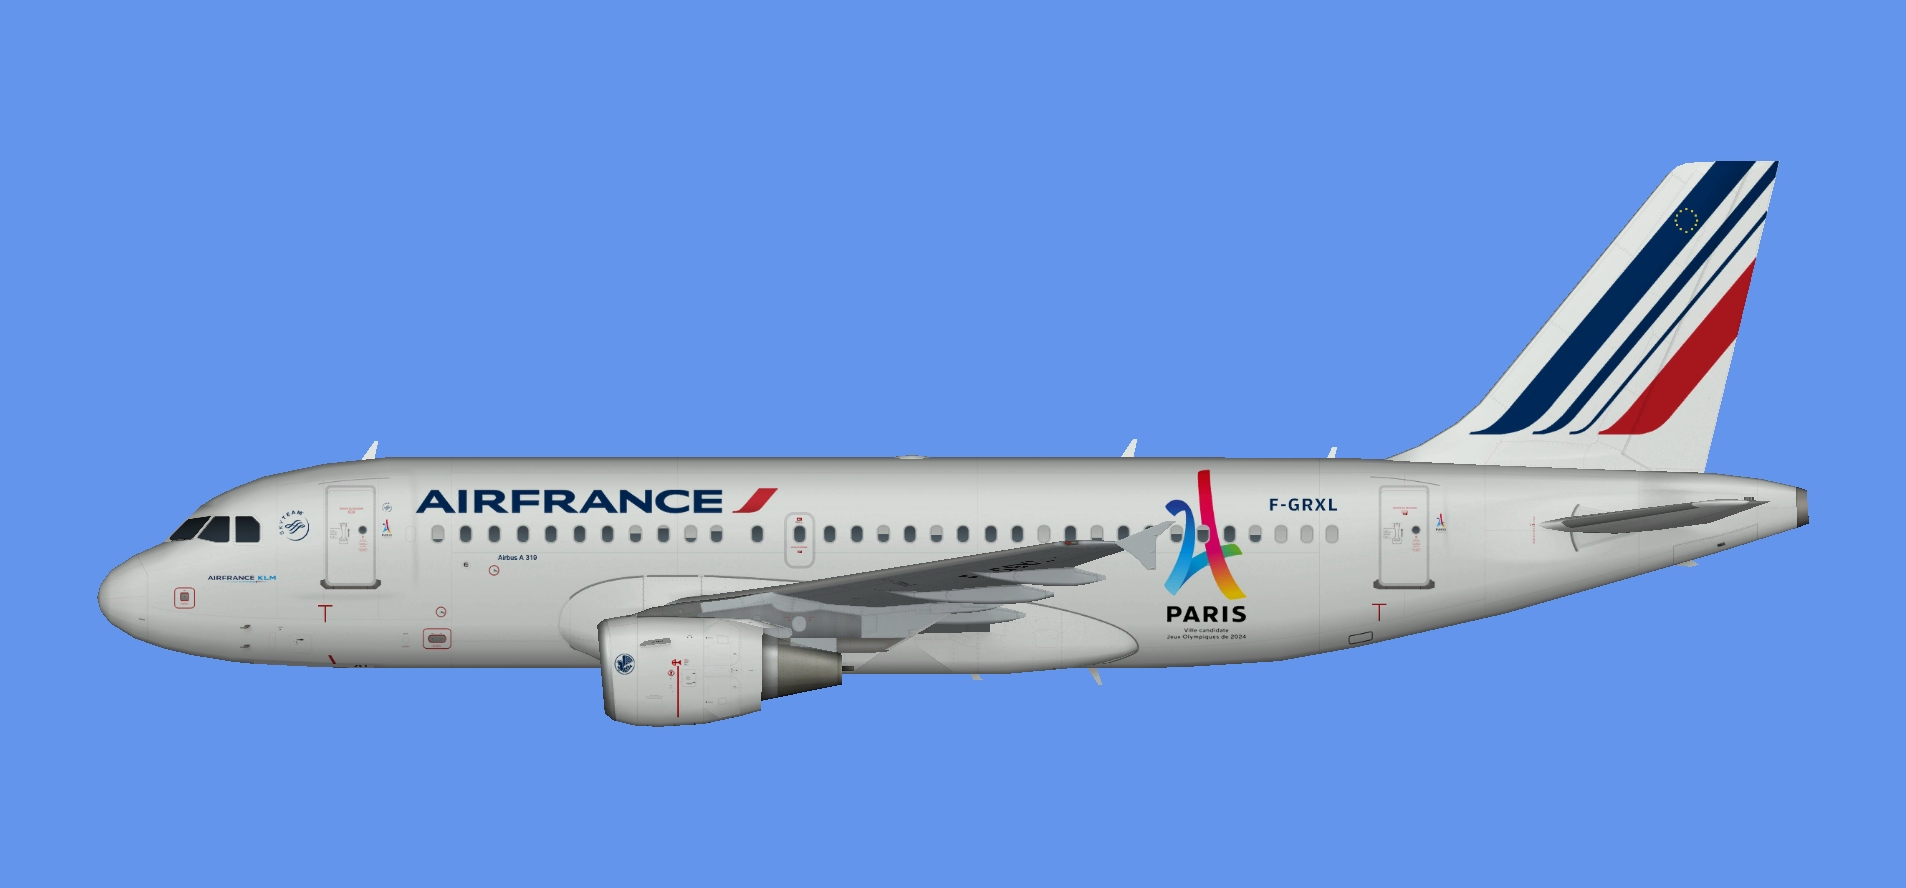 Air France Airbus A319 Paris 2024